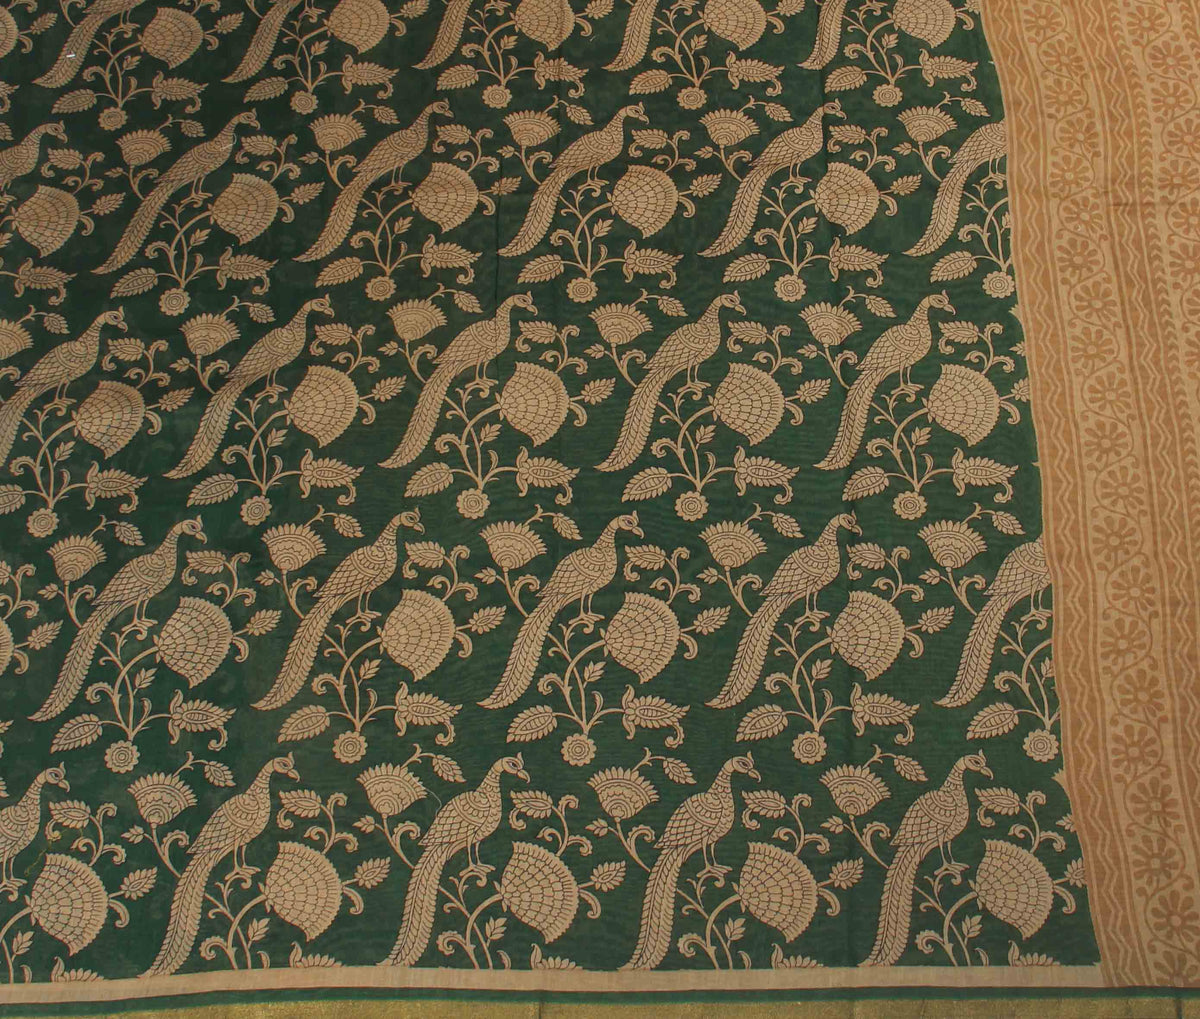 Green Silk Cotton Saree with Peacock prints (2) flat